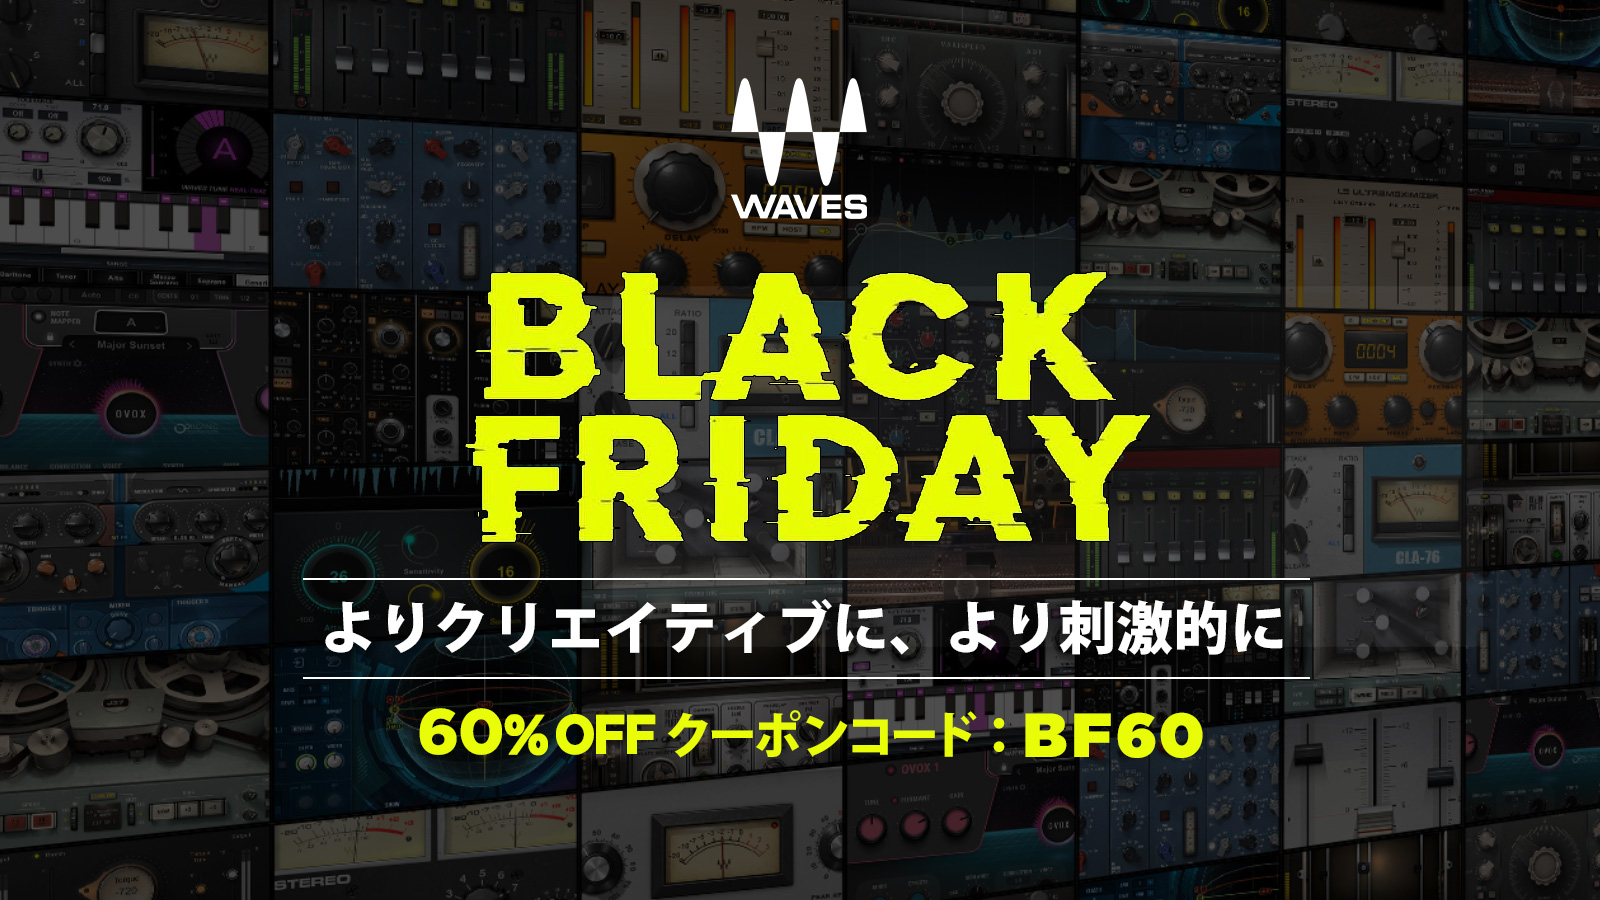 【60%OFF】Wavesほぼ全製品がクーポンで割引!条件クリアで無料プレゼントも!